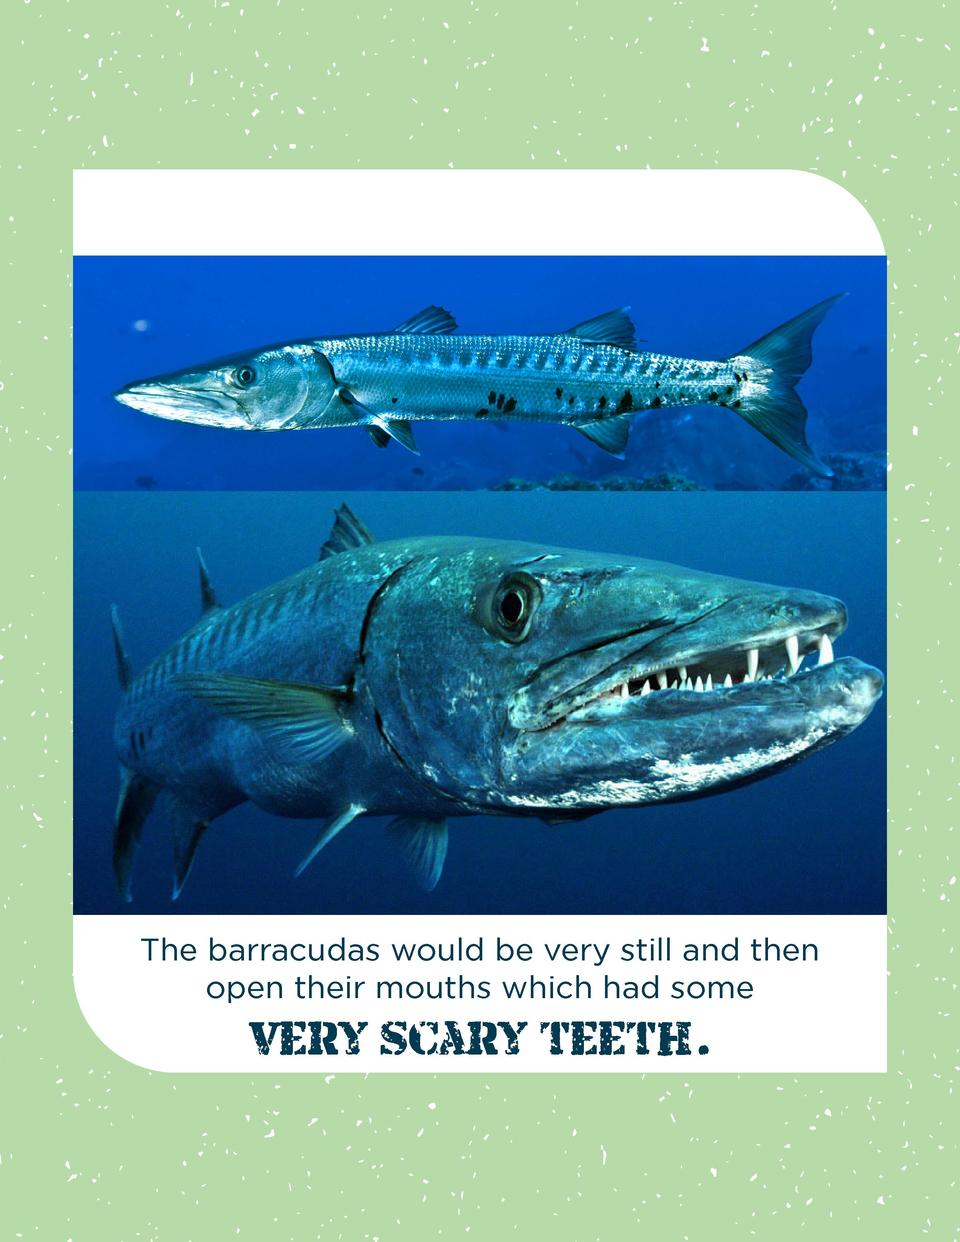 The barracudas would be very still and then open their mouths which had some  very scary teeth.